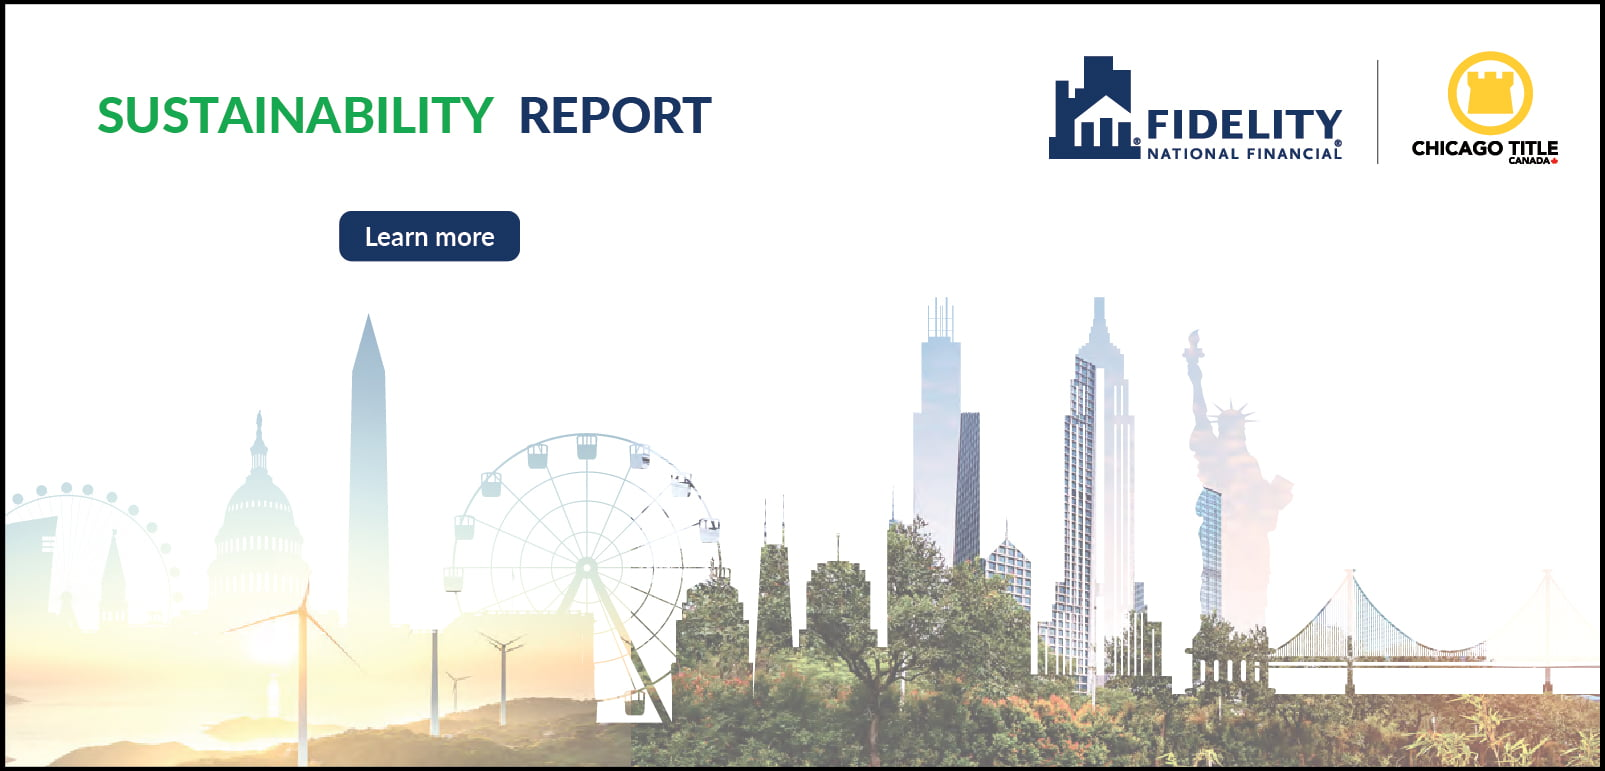 Sustainability Report for Fidelity National Financial